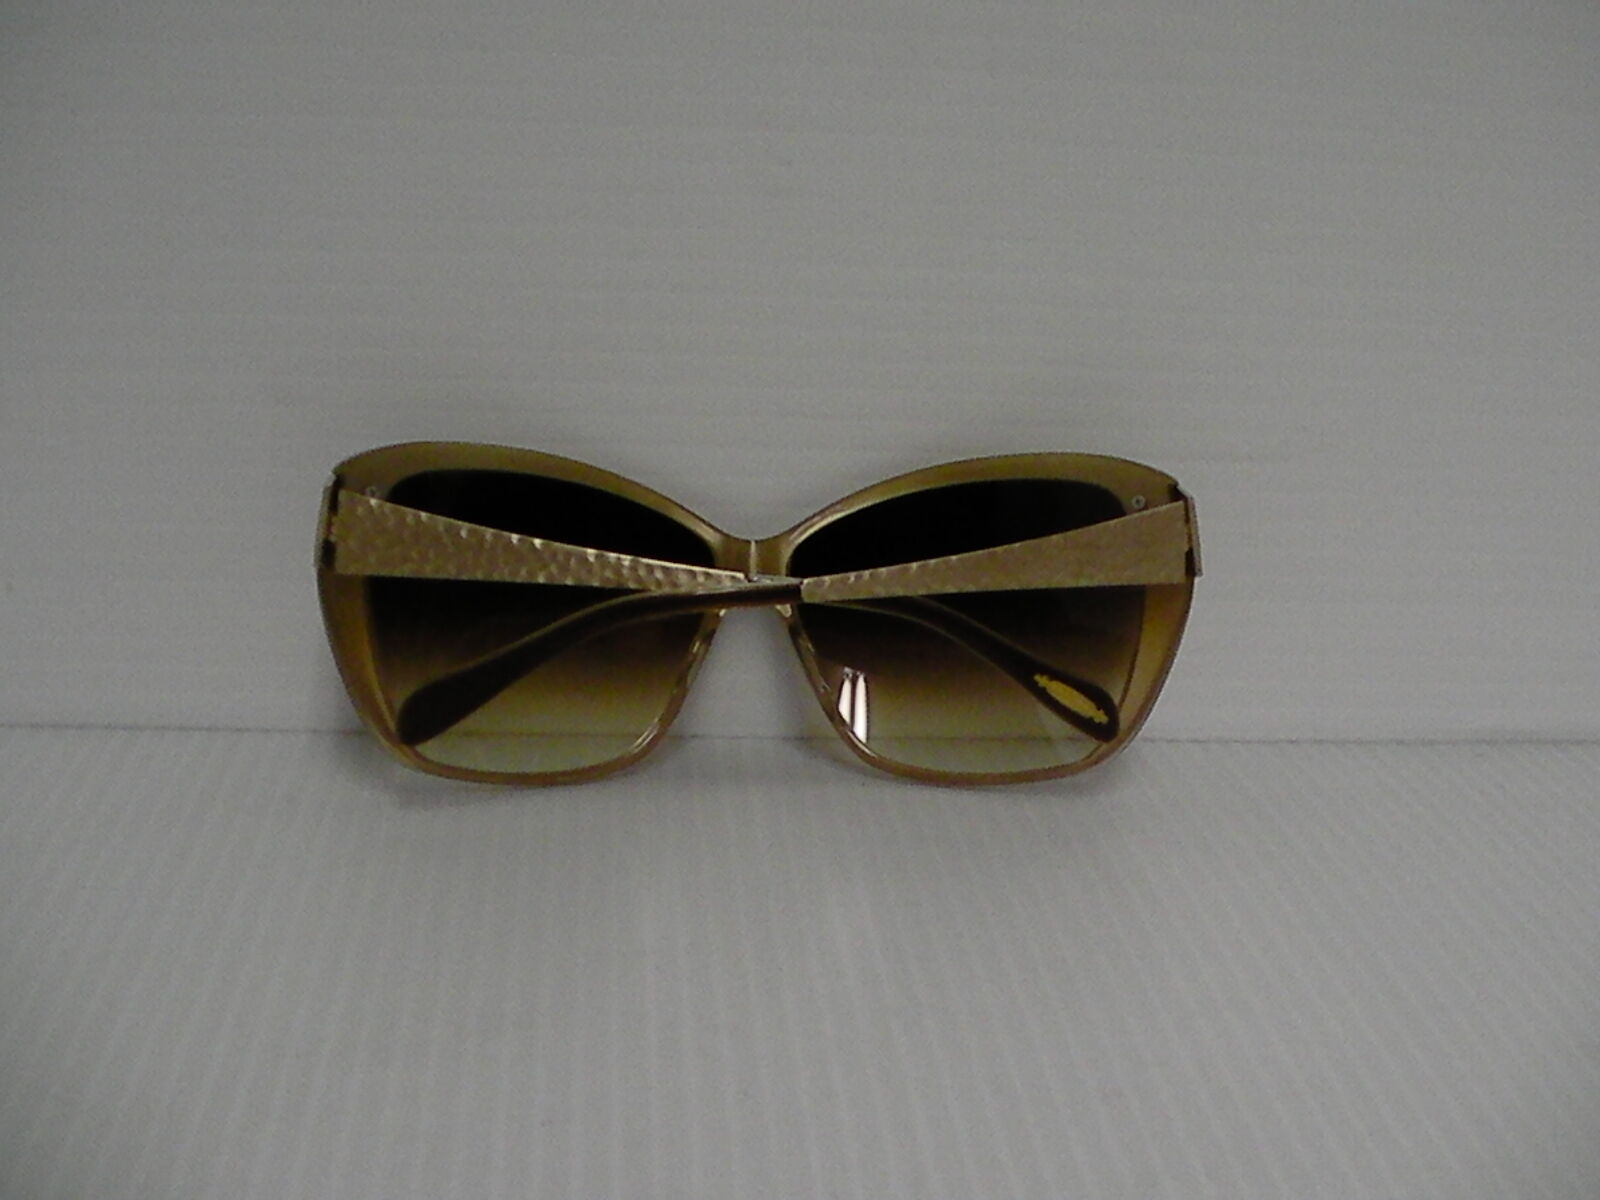 Womens OLIVER PEOPLES NEW SUNGLASSES SKYLA HAMMERED GOLD AMBER LENSE image 5